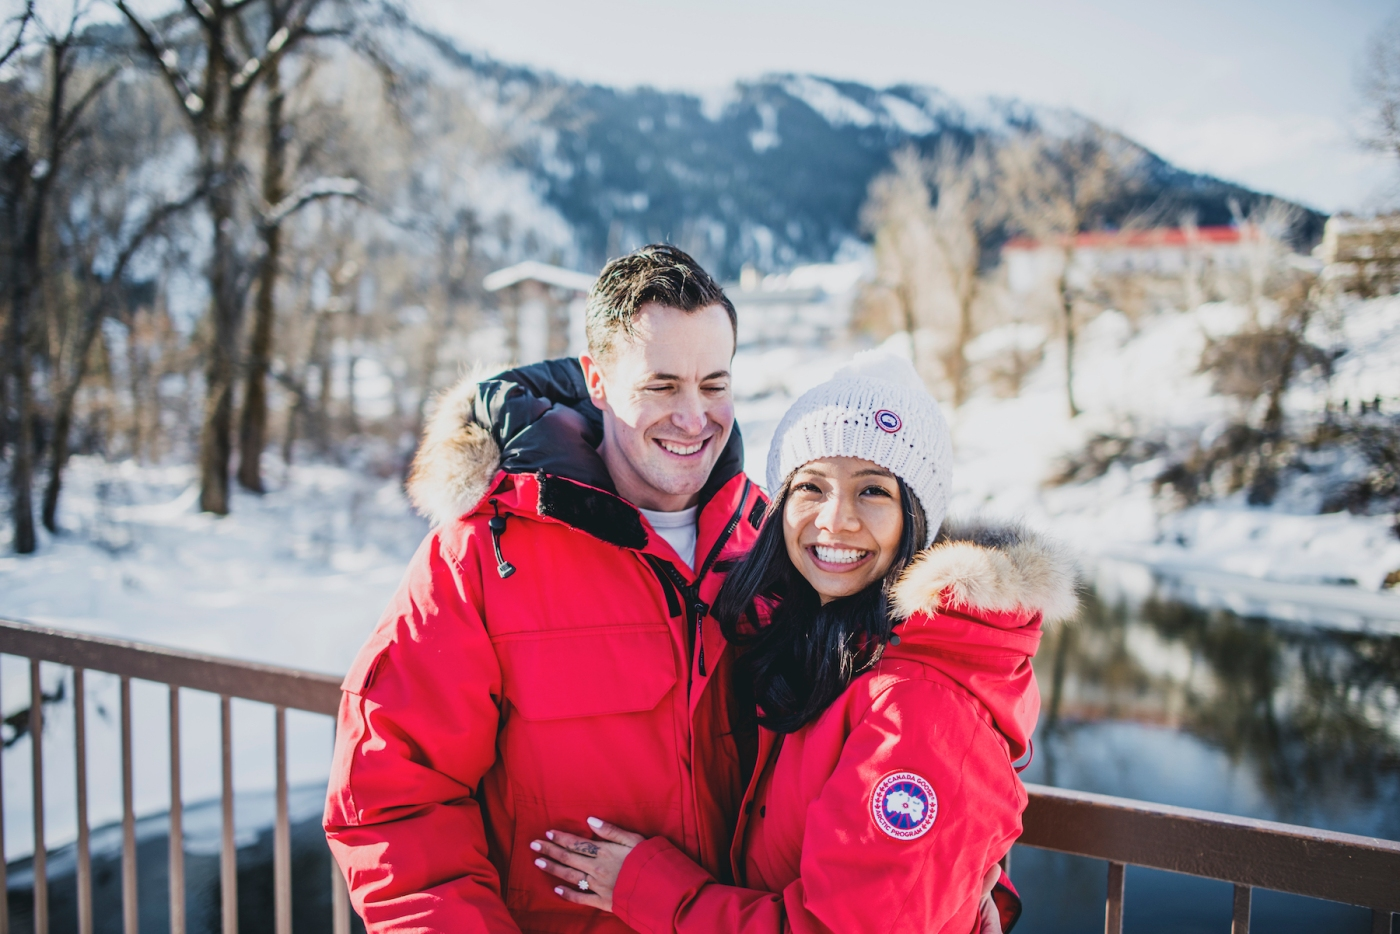 leavenworth_elopement_by_jane_speleers_photography_seattle_photographer_2017_winter_snow_joy_and_jason_rendezvous_ranch_cashmere_leavenworth_nahahum_canyon_all_rights_reserveddsc_9901